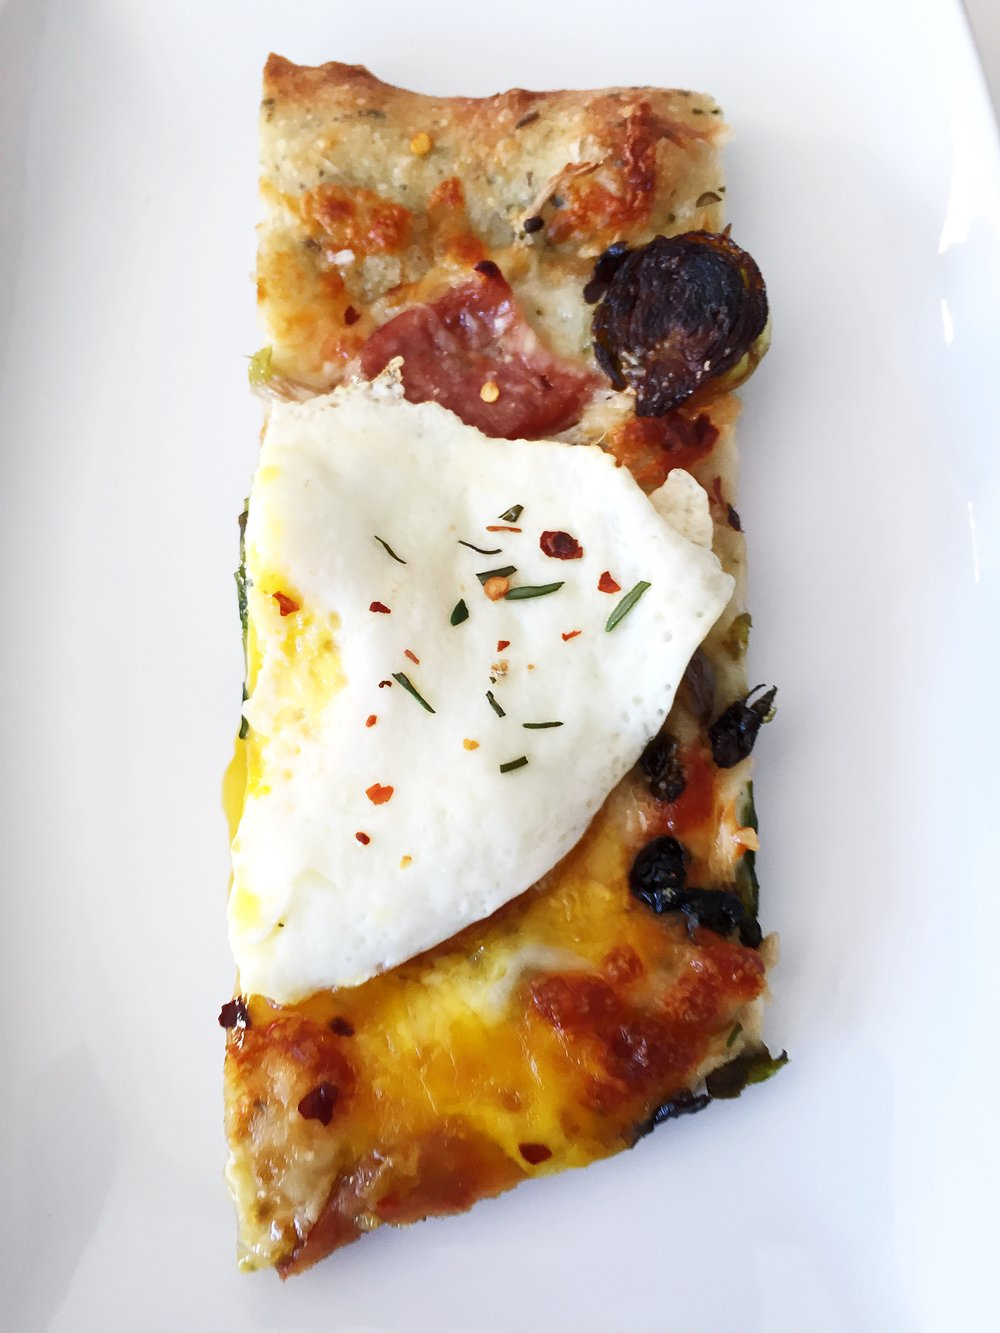 The perfect slice! Happy brunching :)